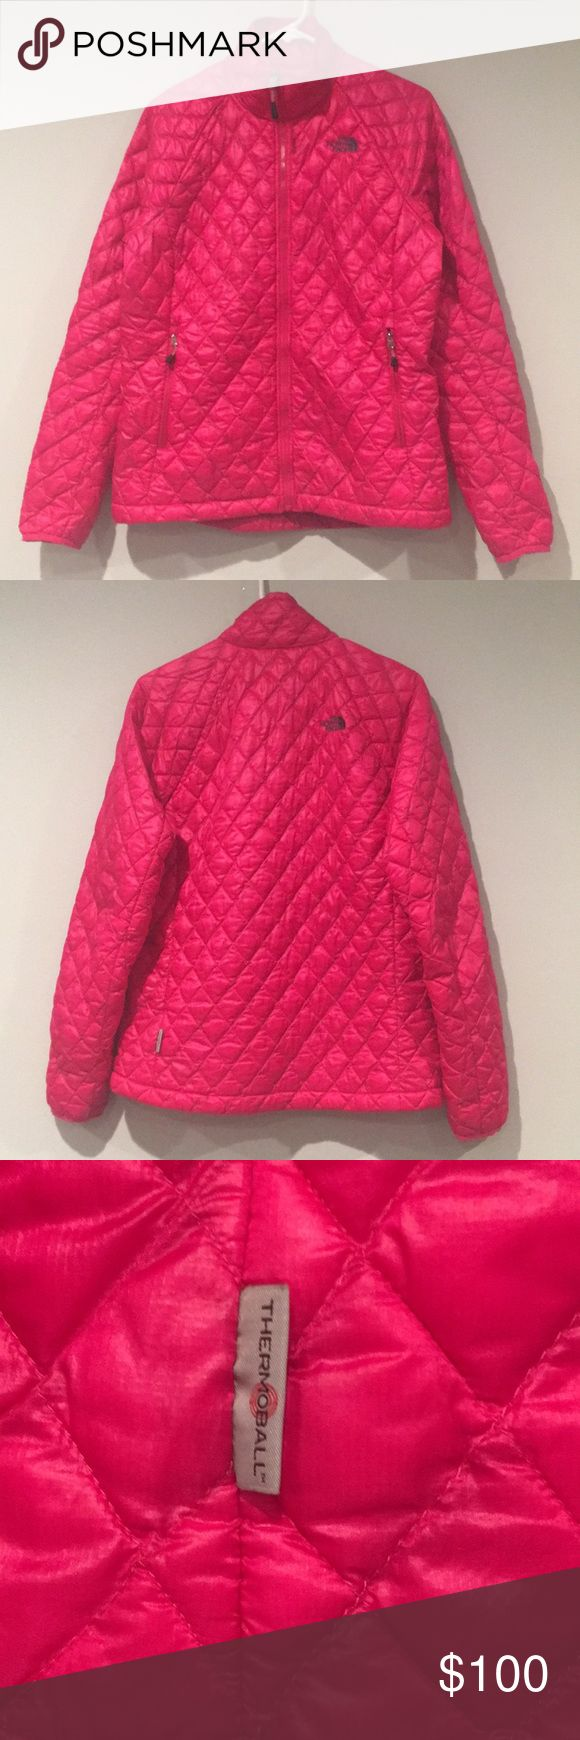 The North Face Thermoball Jacket Very Good Condition Some Wear On Sleeve Cuffs And Light Wear Hot Pink M (Womens) The North Face Jackets & Coats Puffers